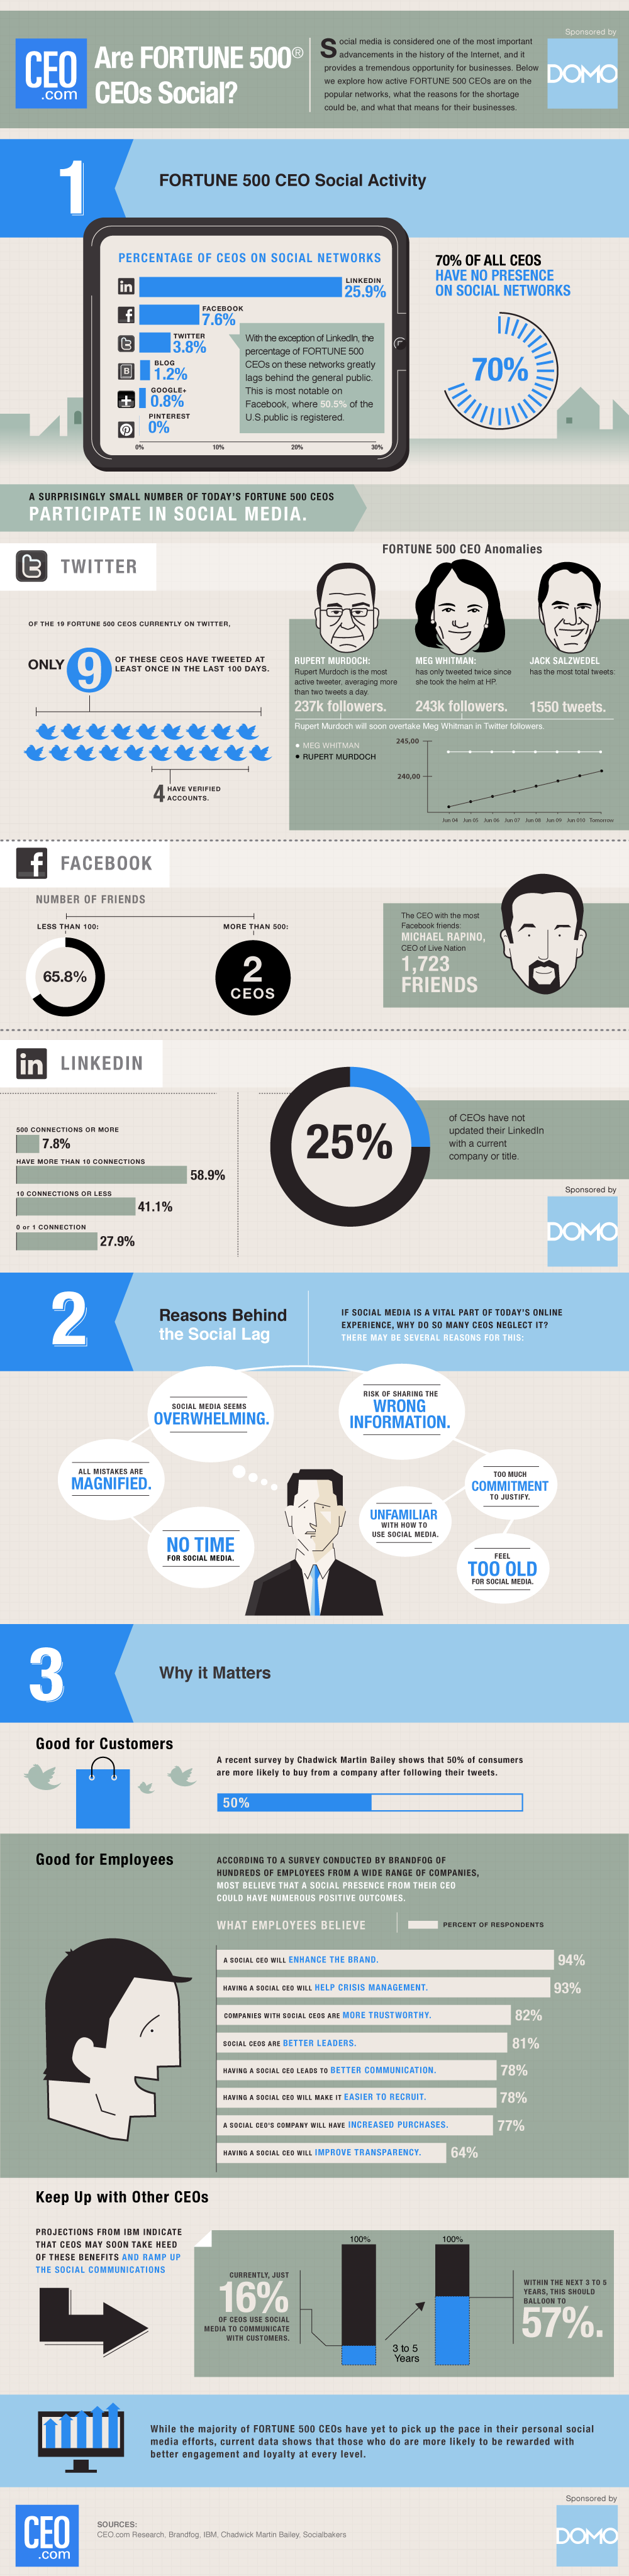 CEO.com Infographic on CEO Social Engagement